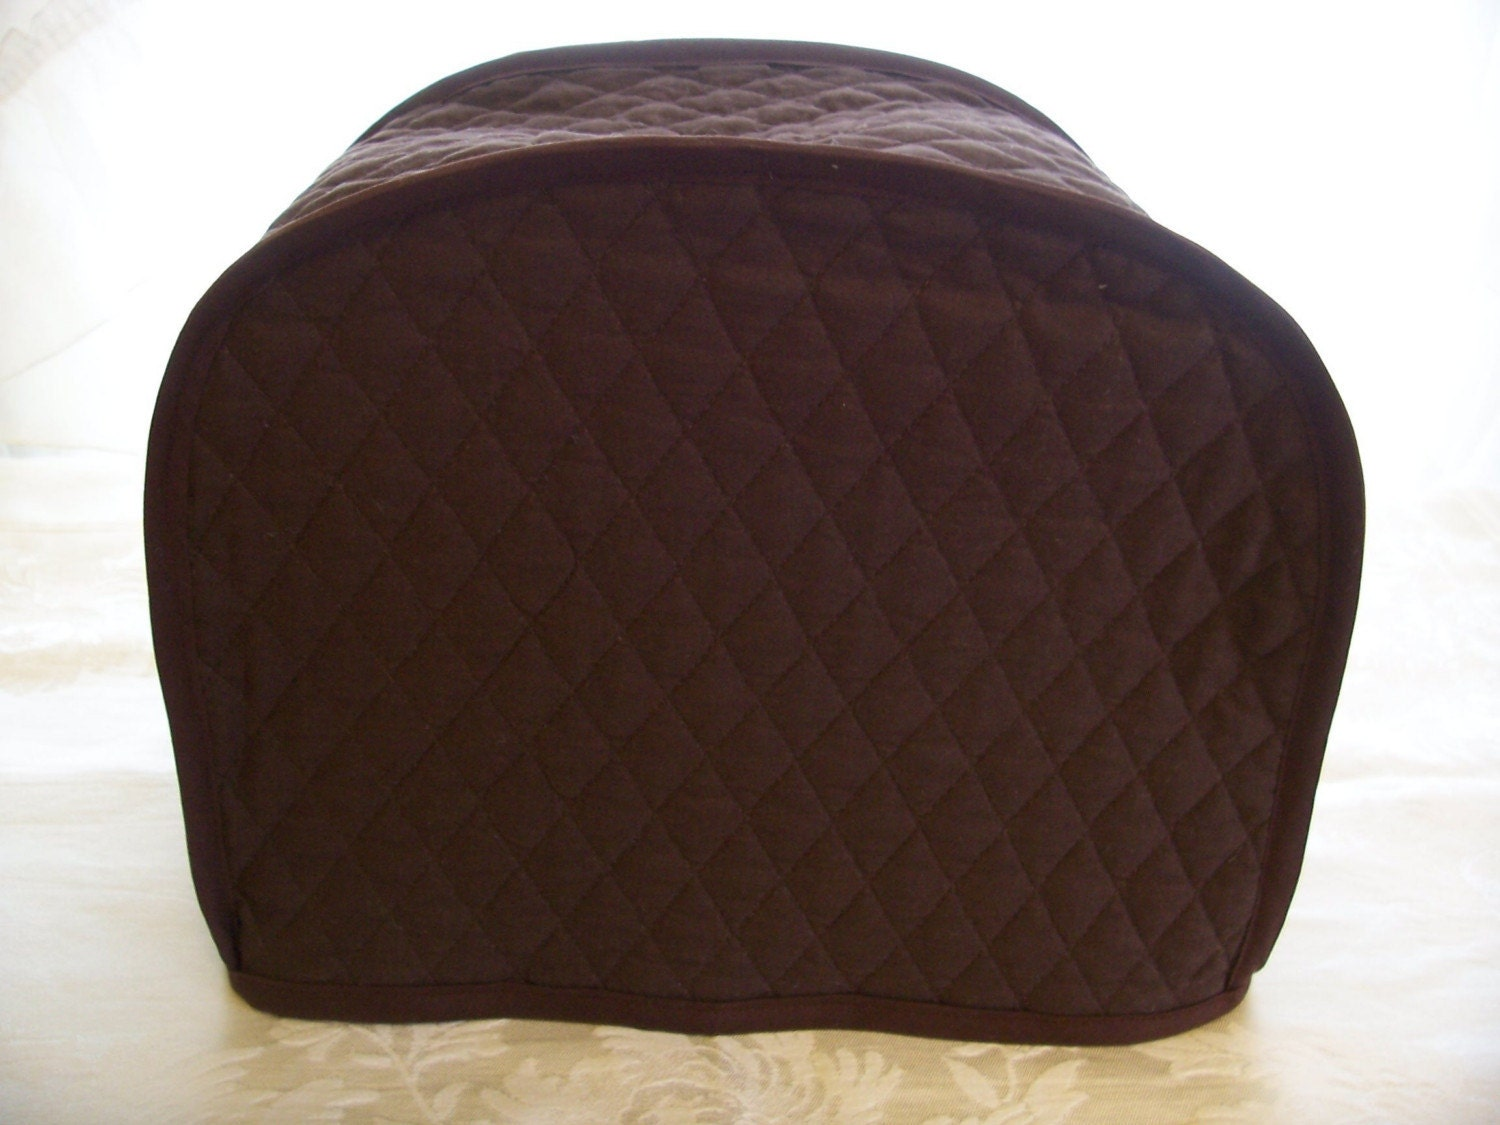 brown 2 slice toaster cover by cozykitchencovers on etsy. Black Bedroom Furniture Sets. Home Design Ideas